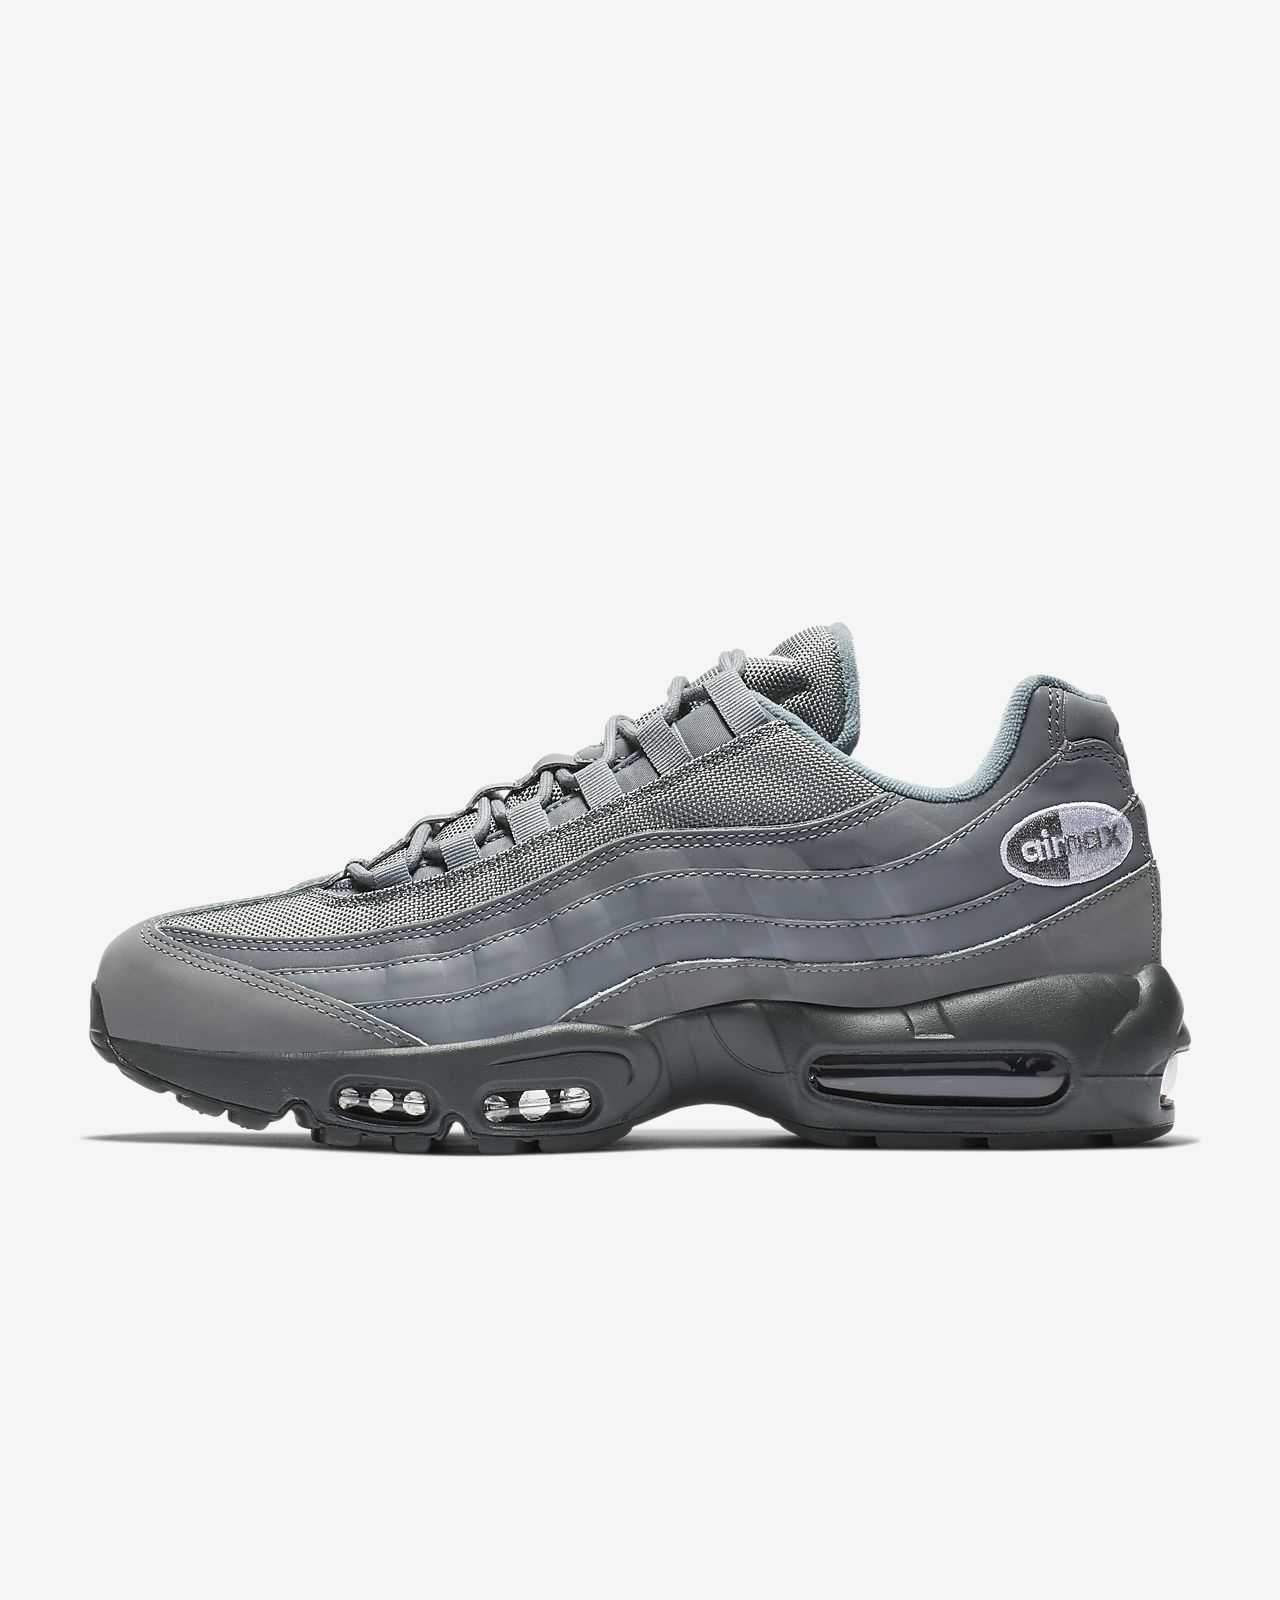 7c00d3e15d0 Nike Air Max 95 Men s Shoe. Nike.com PT